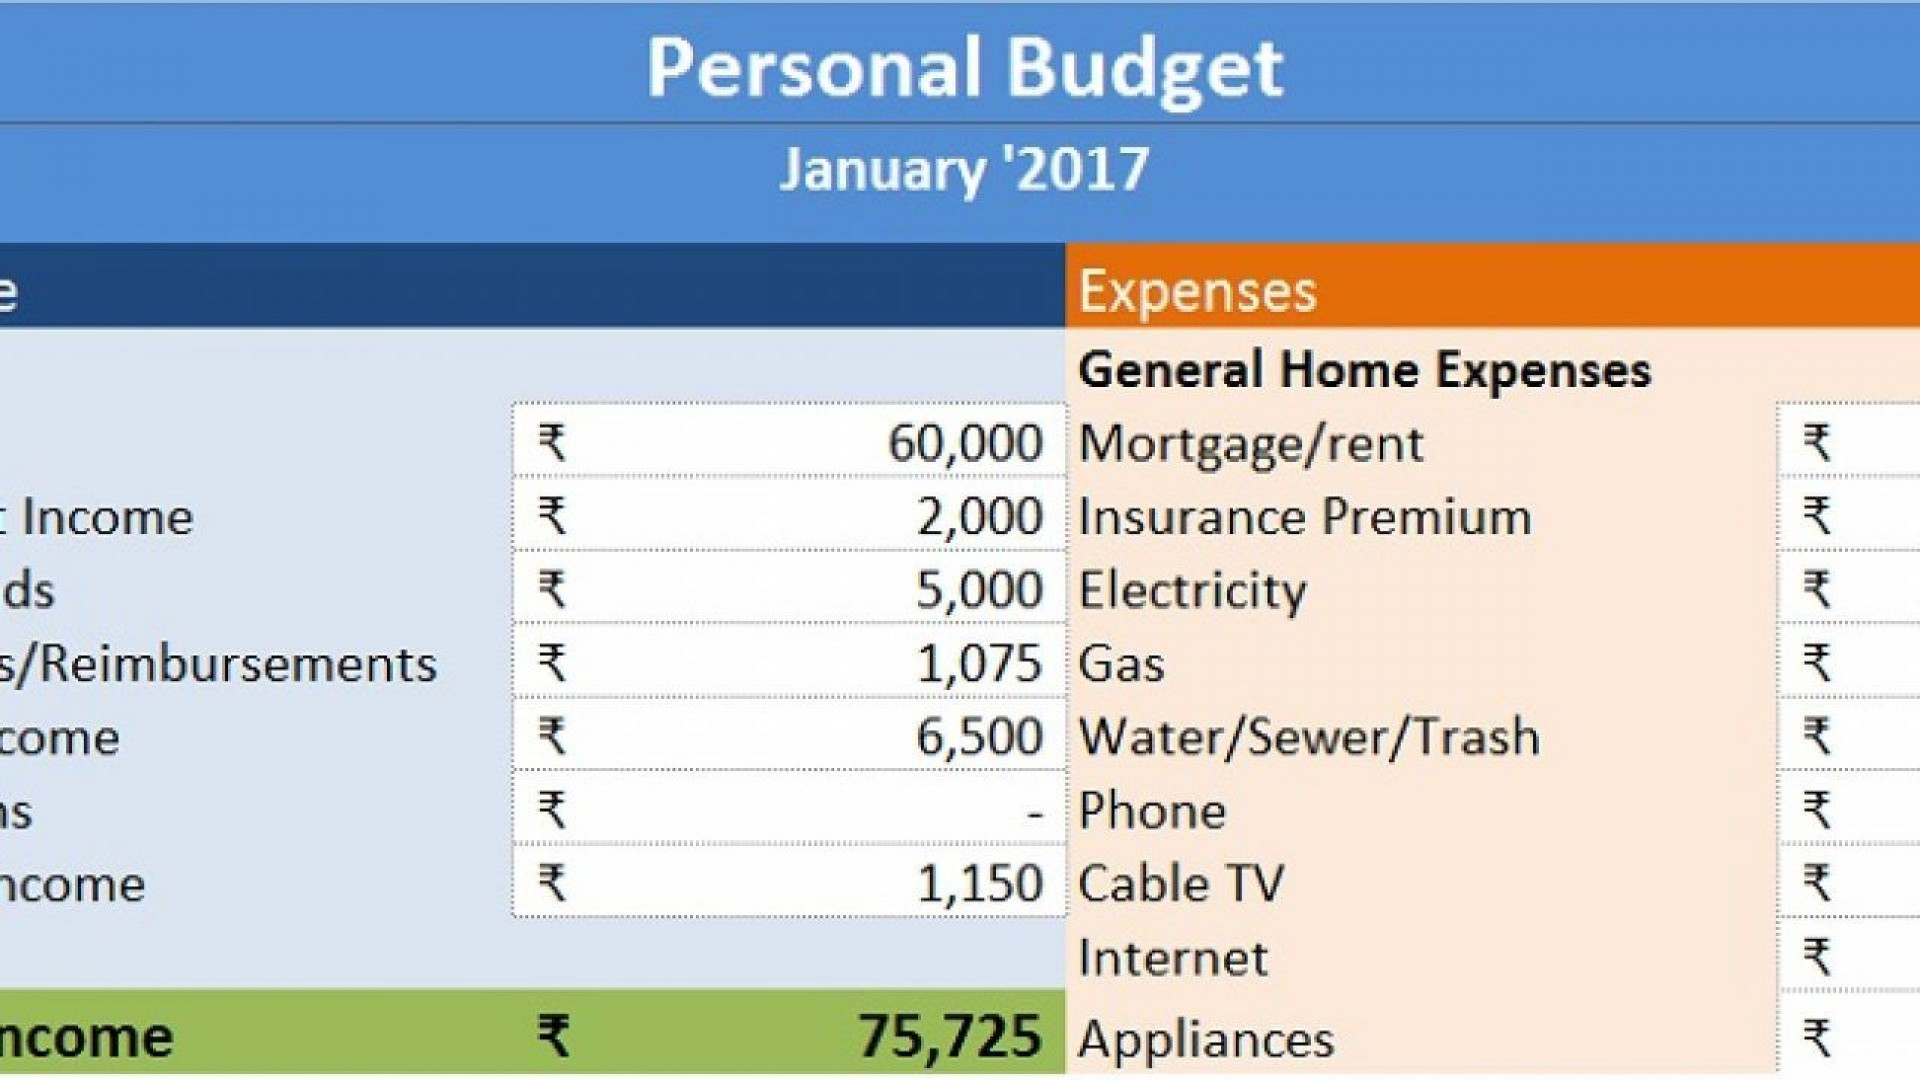 003 Fantastic Personal Financial Template Excel Highest Clarity  Statement Budget India Expense Report1920